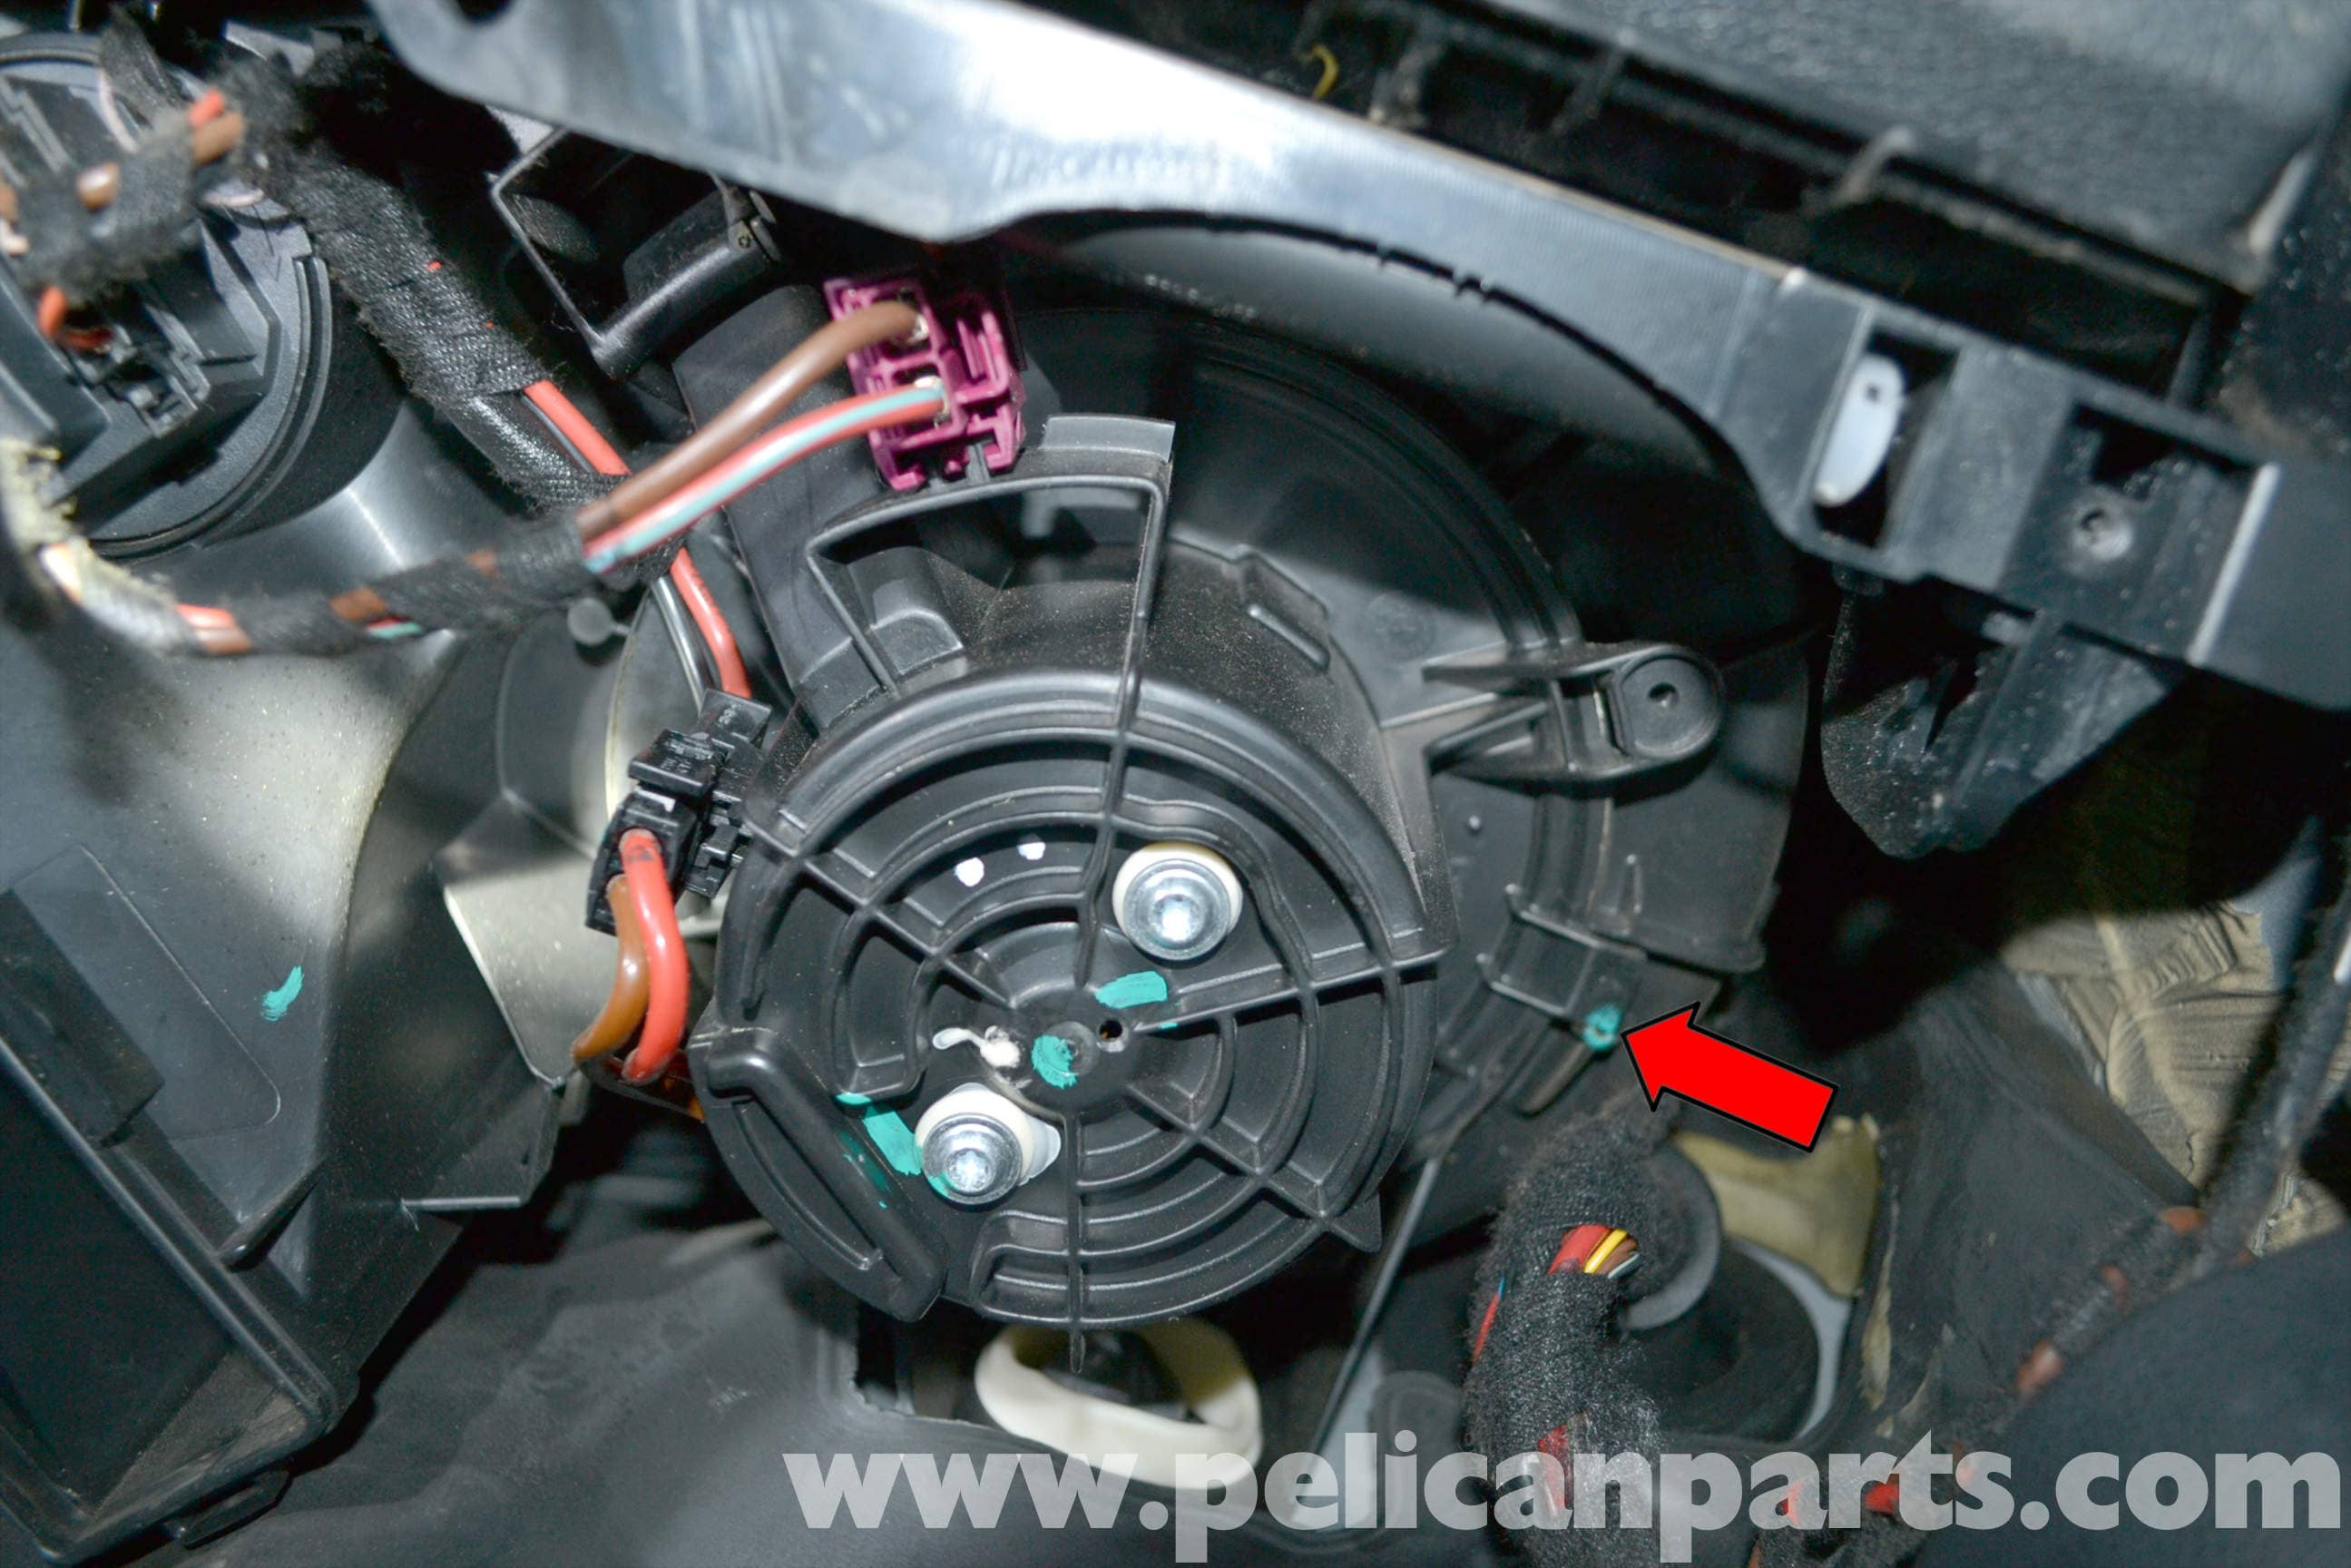 2010 Mercedes C300 W204 Spare Fuse Box Diagram 46 Wiring 2008 Pic06 Benz Blower Motor Replacement 2014 C250 C Class